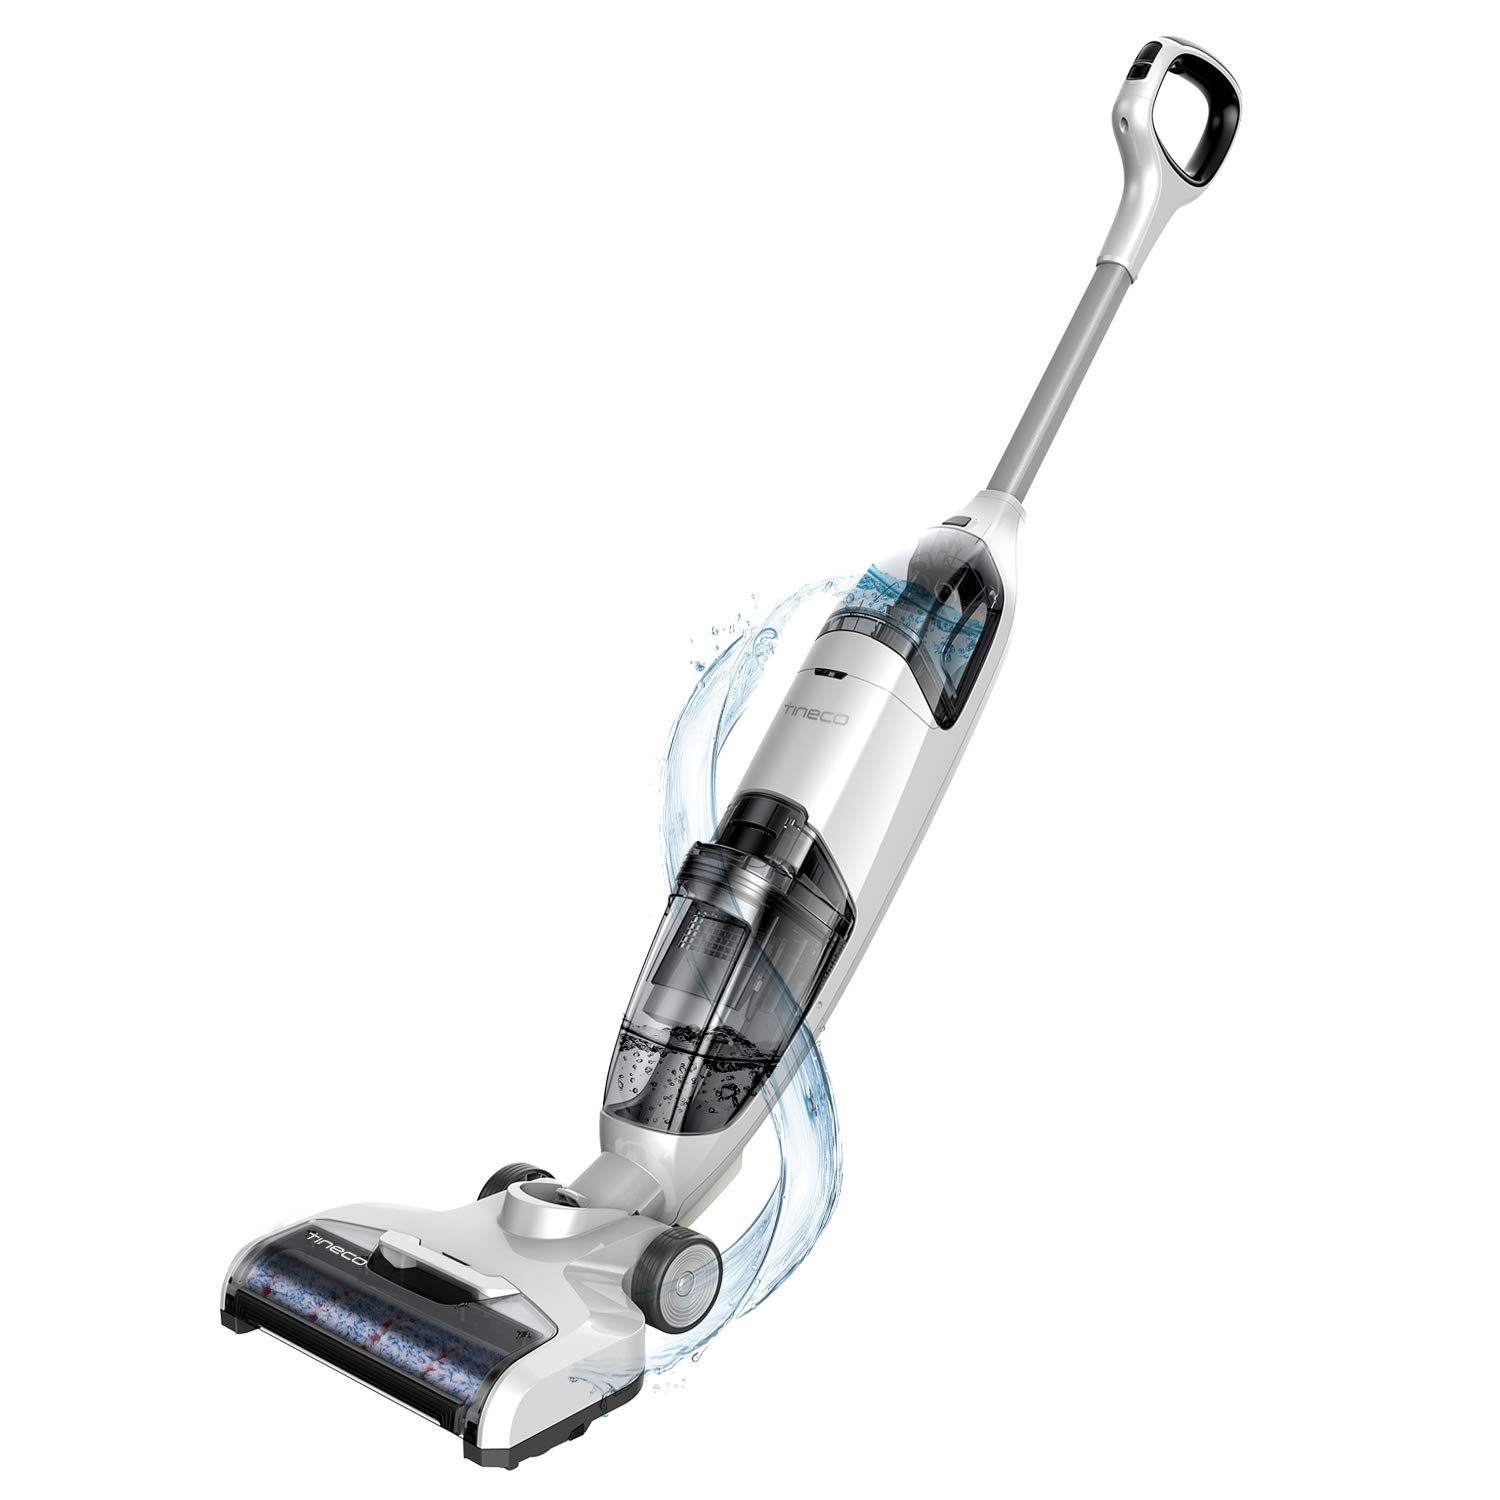 Tineco iFloor Cordless Wet Dry Vacuum Cleaner Powerful and Lightweight Hard Floor Washer with Self-Cleaning Brush